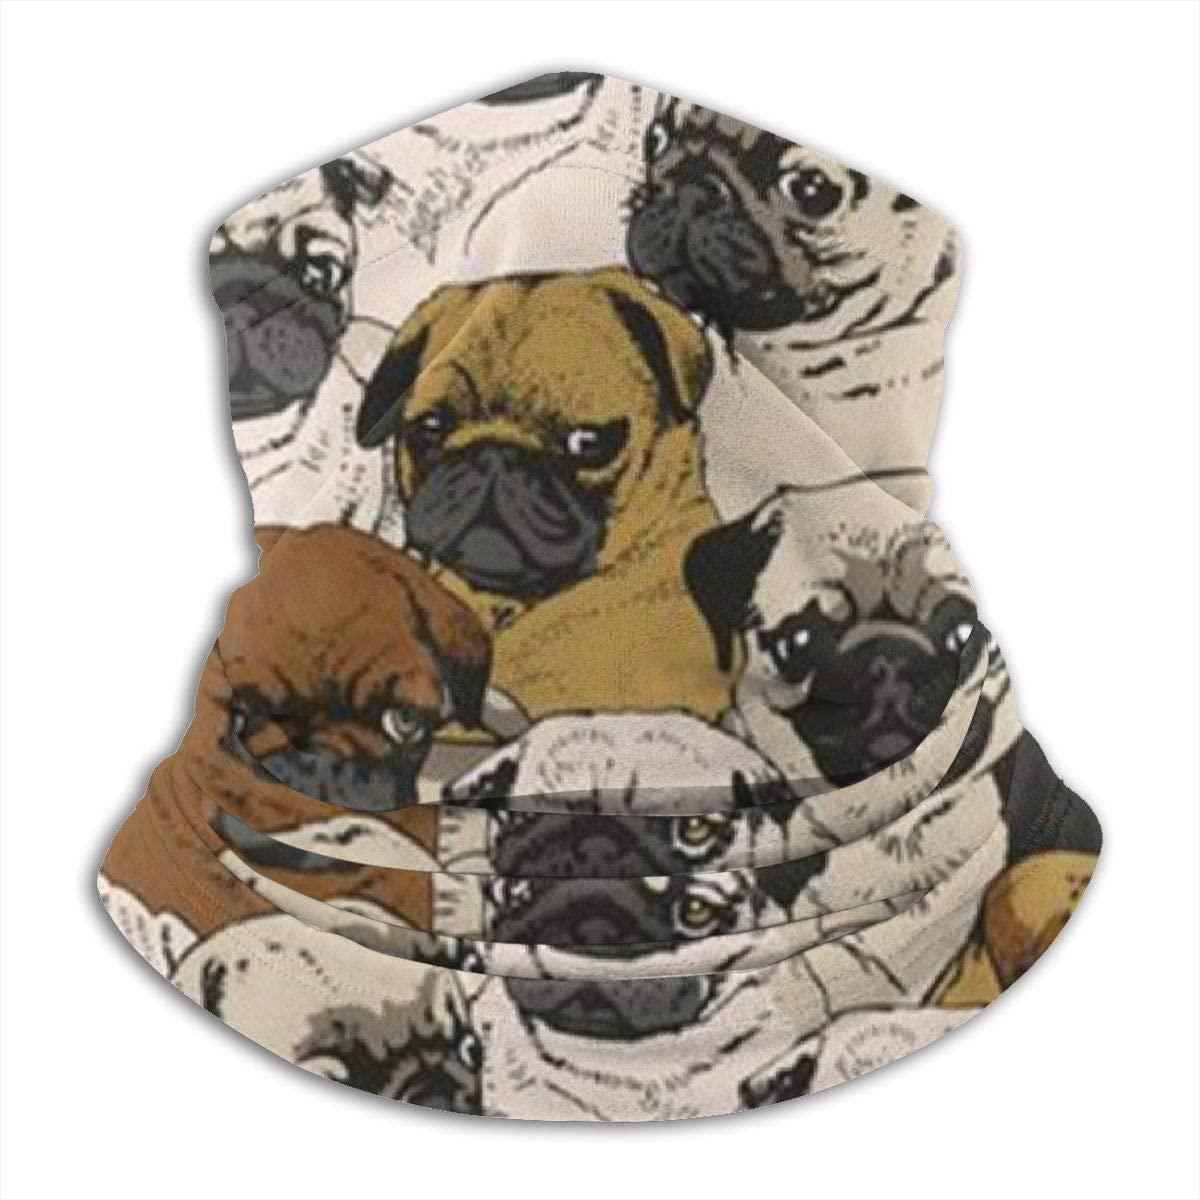 CLERO& Scarf Fleece Neck Warmer Pug Pattern Funny Pugs Dogs Windproof Winter Neck Gaiter Cold Weather Face Mask for Men Women